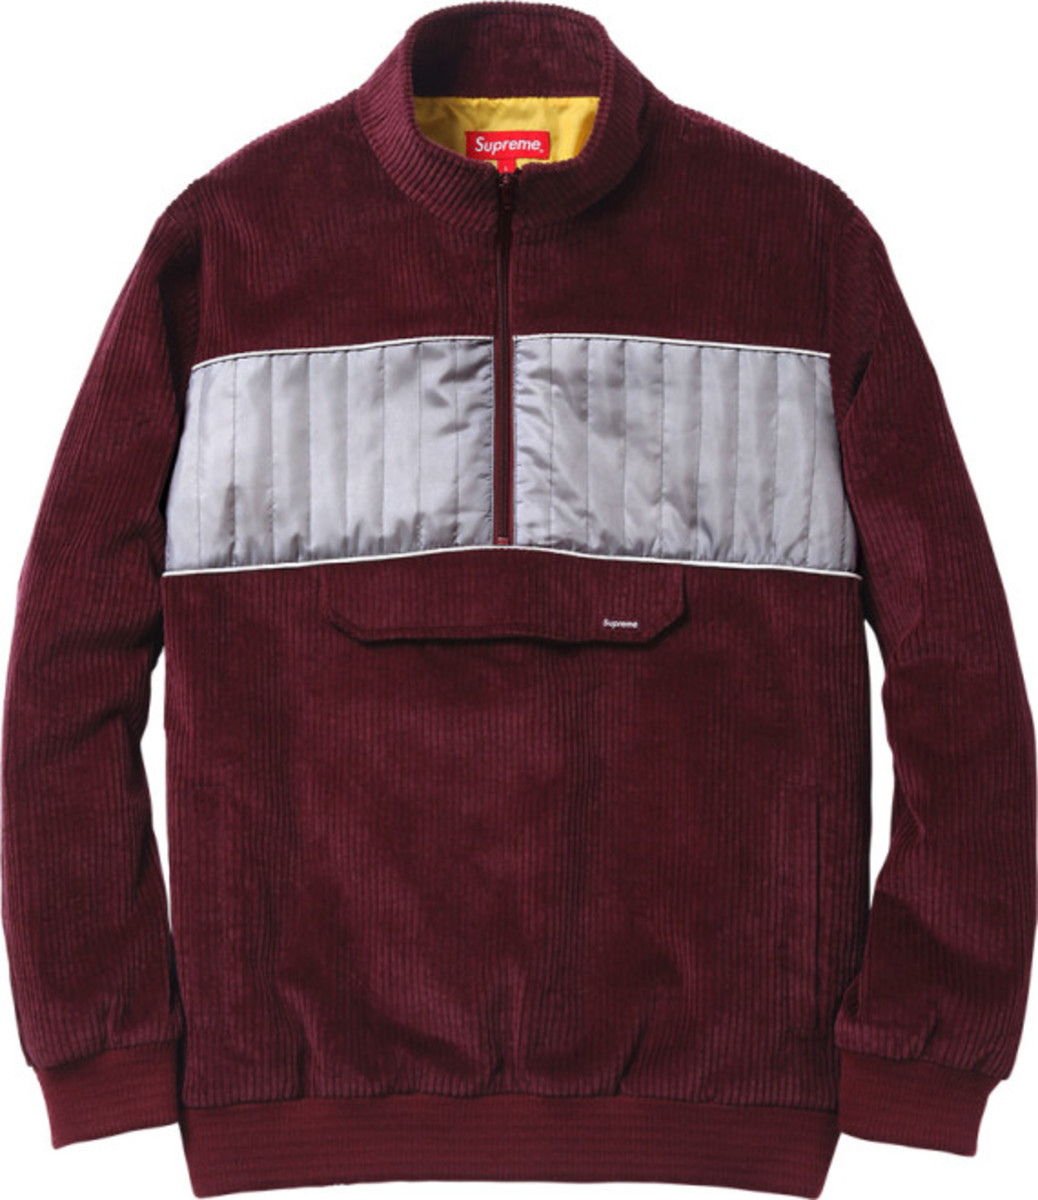 supreme-fall-winter-2013-outerwear-collection-82